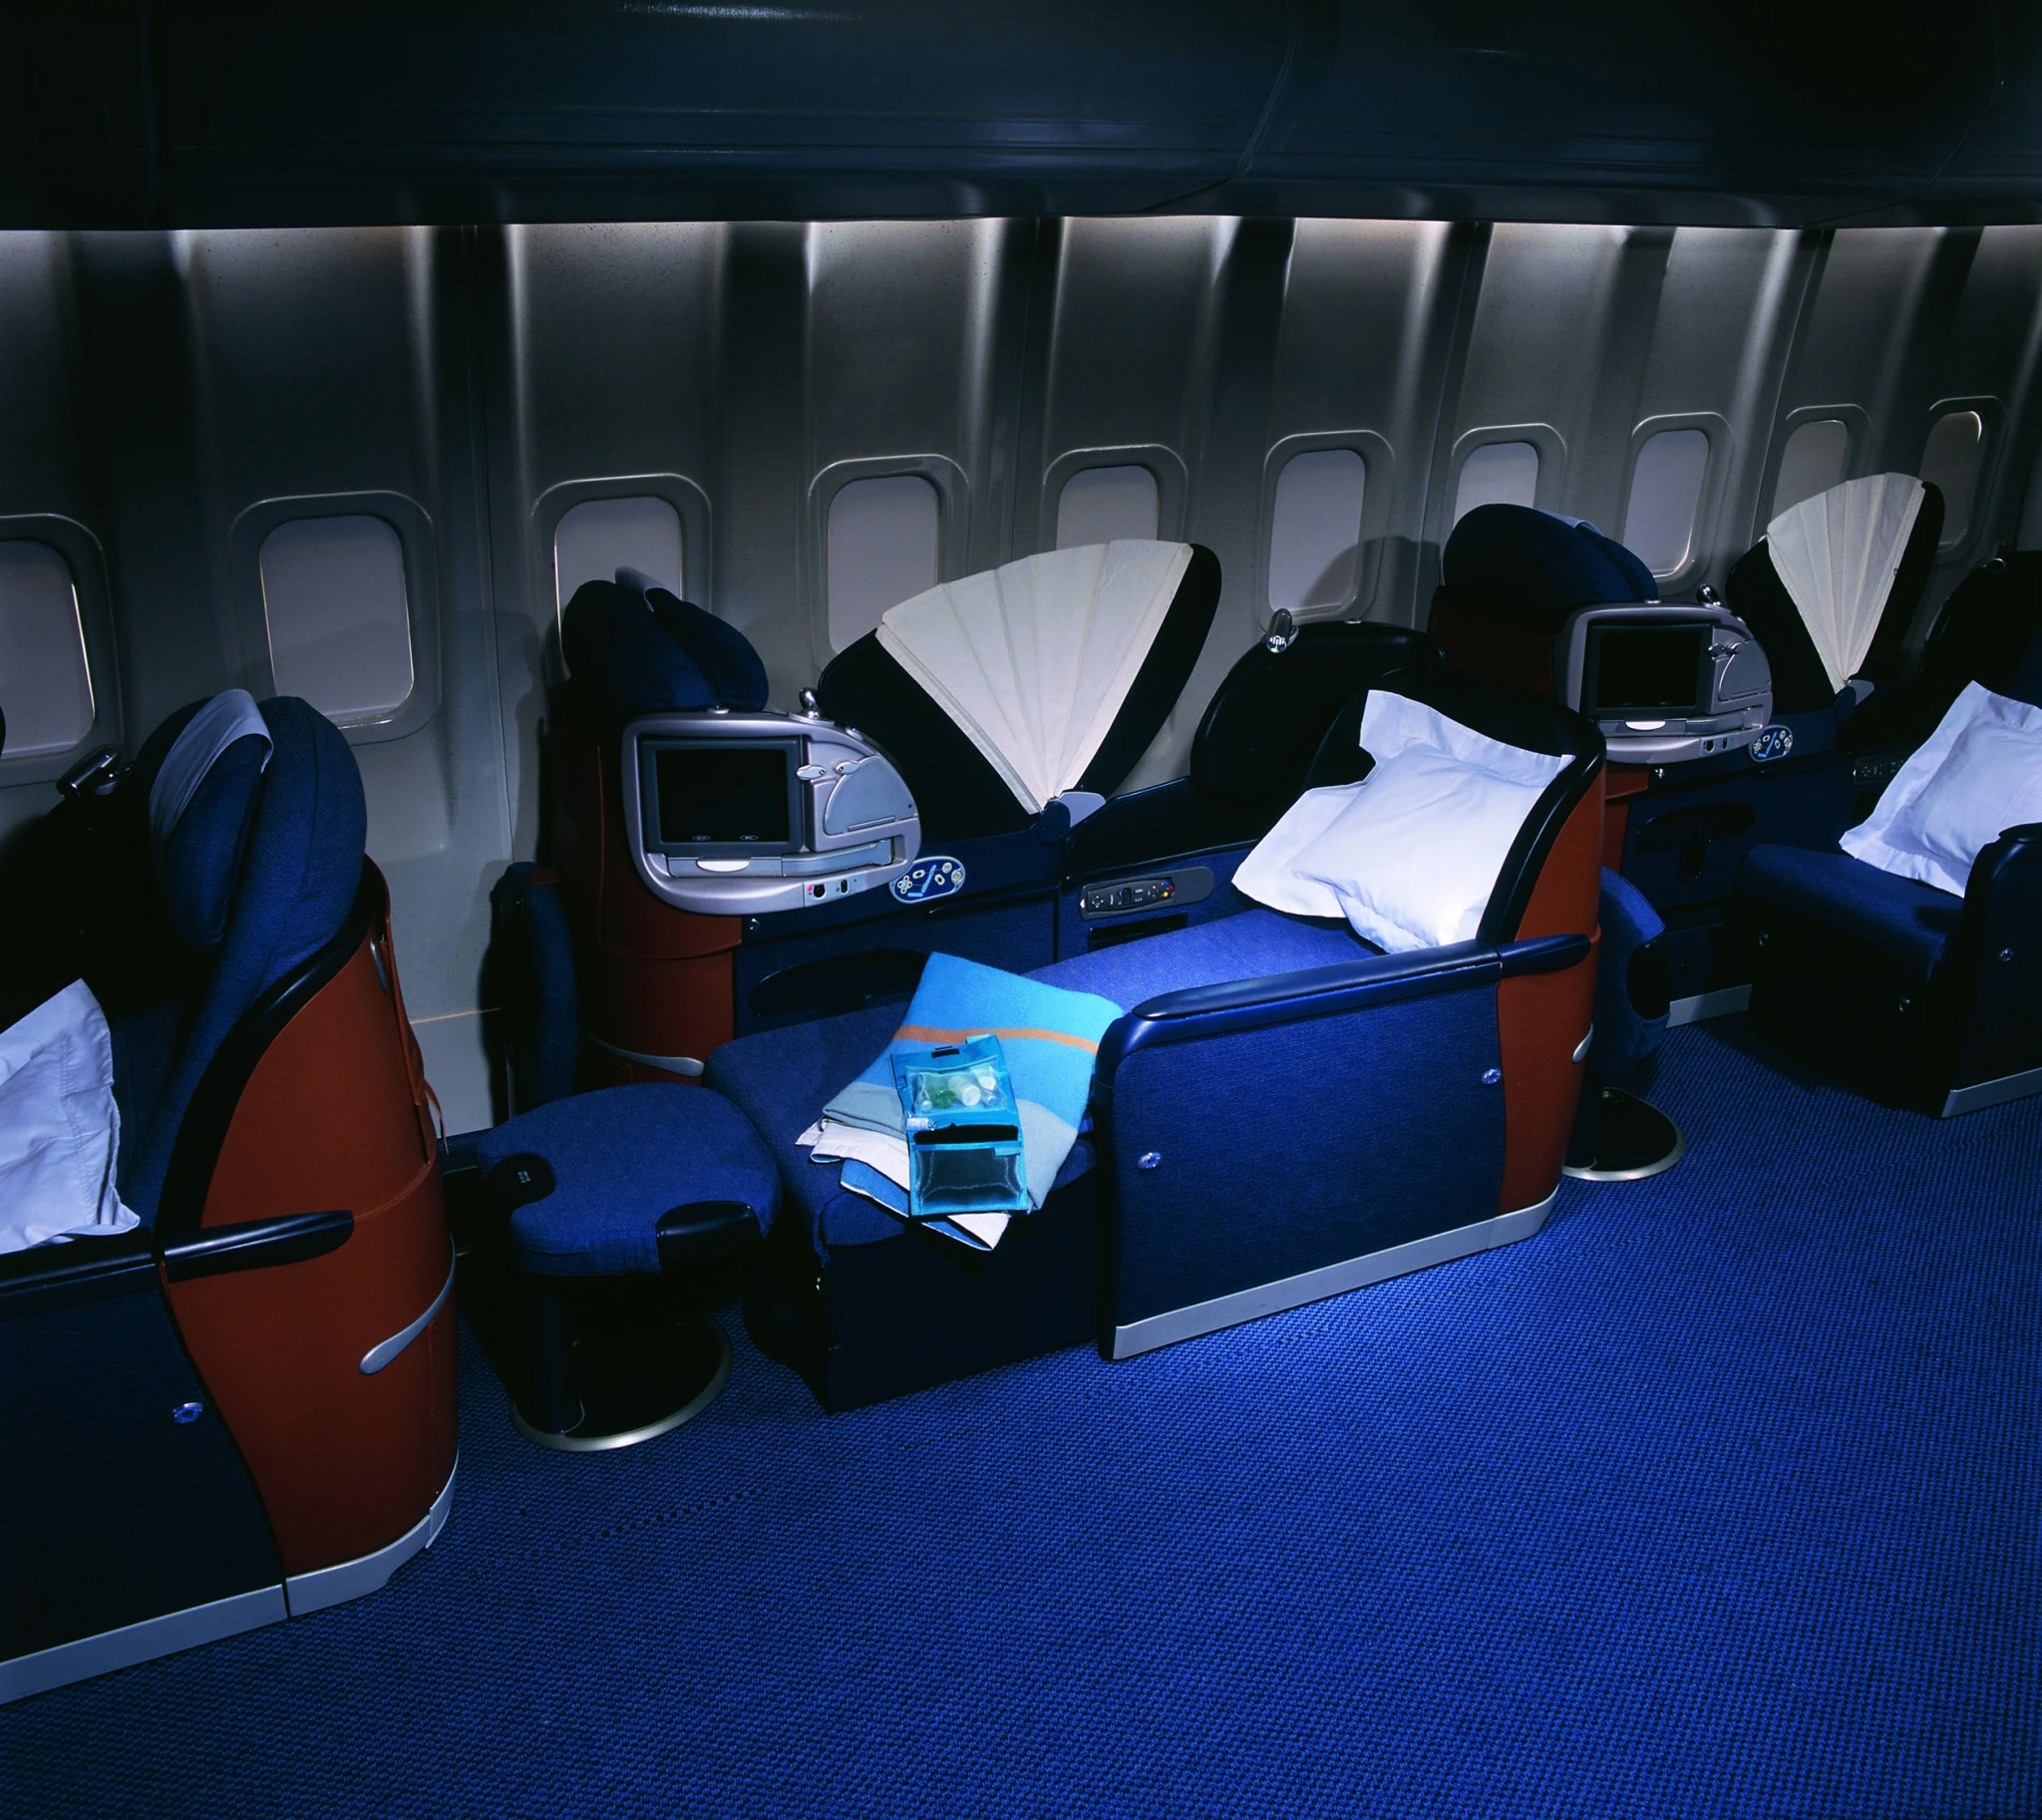 A History of British Airways' Business-Class Seat